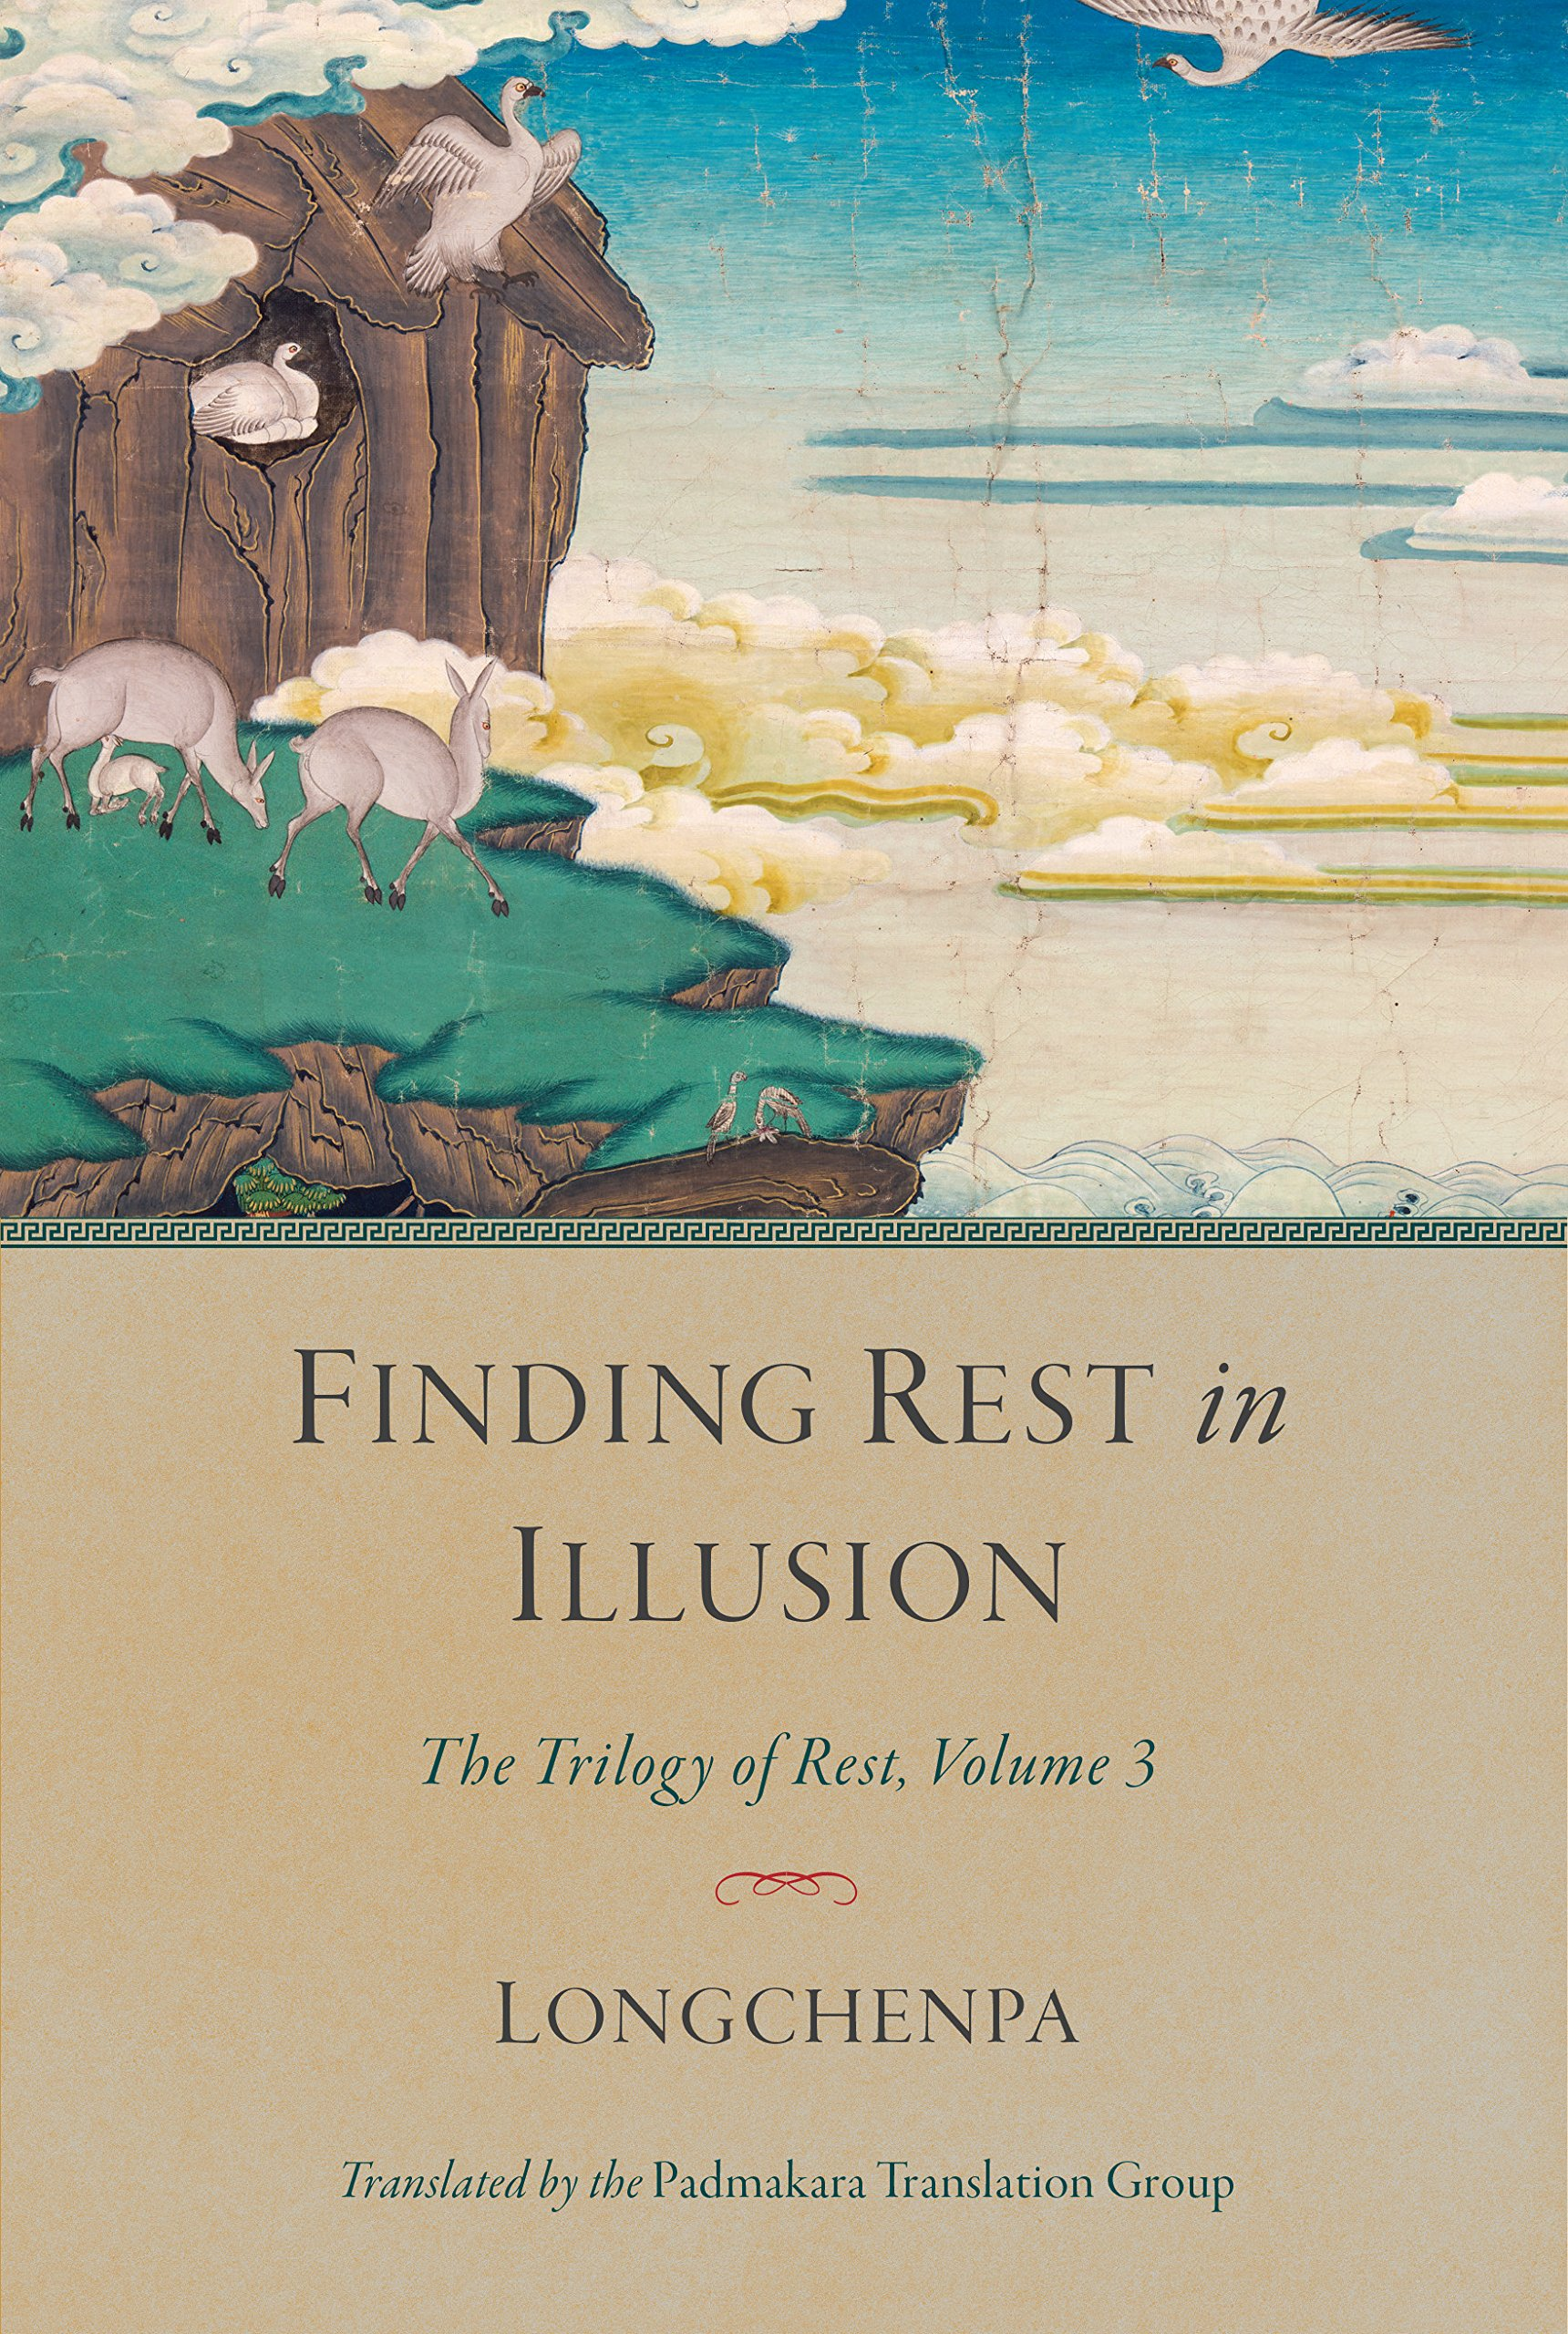 Finding Rest in Illusion: The Trilogy of Rest, Volume 3